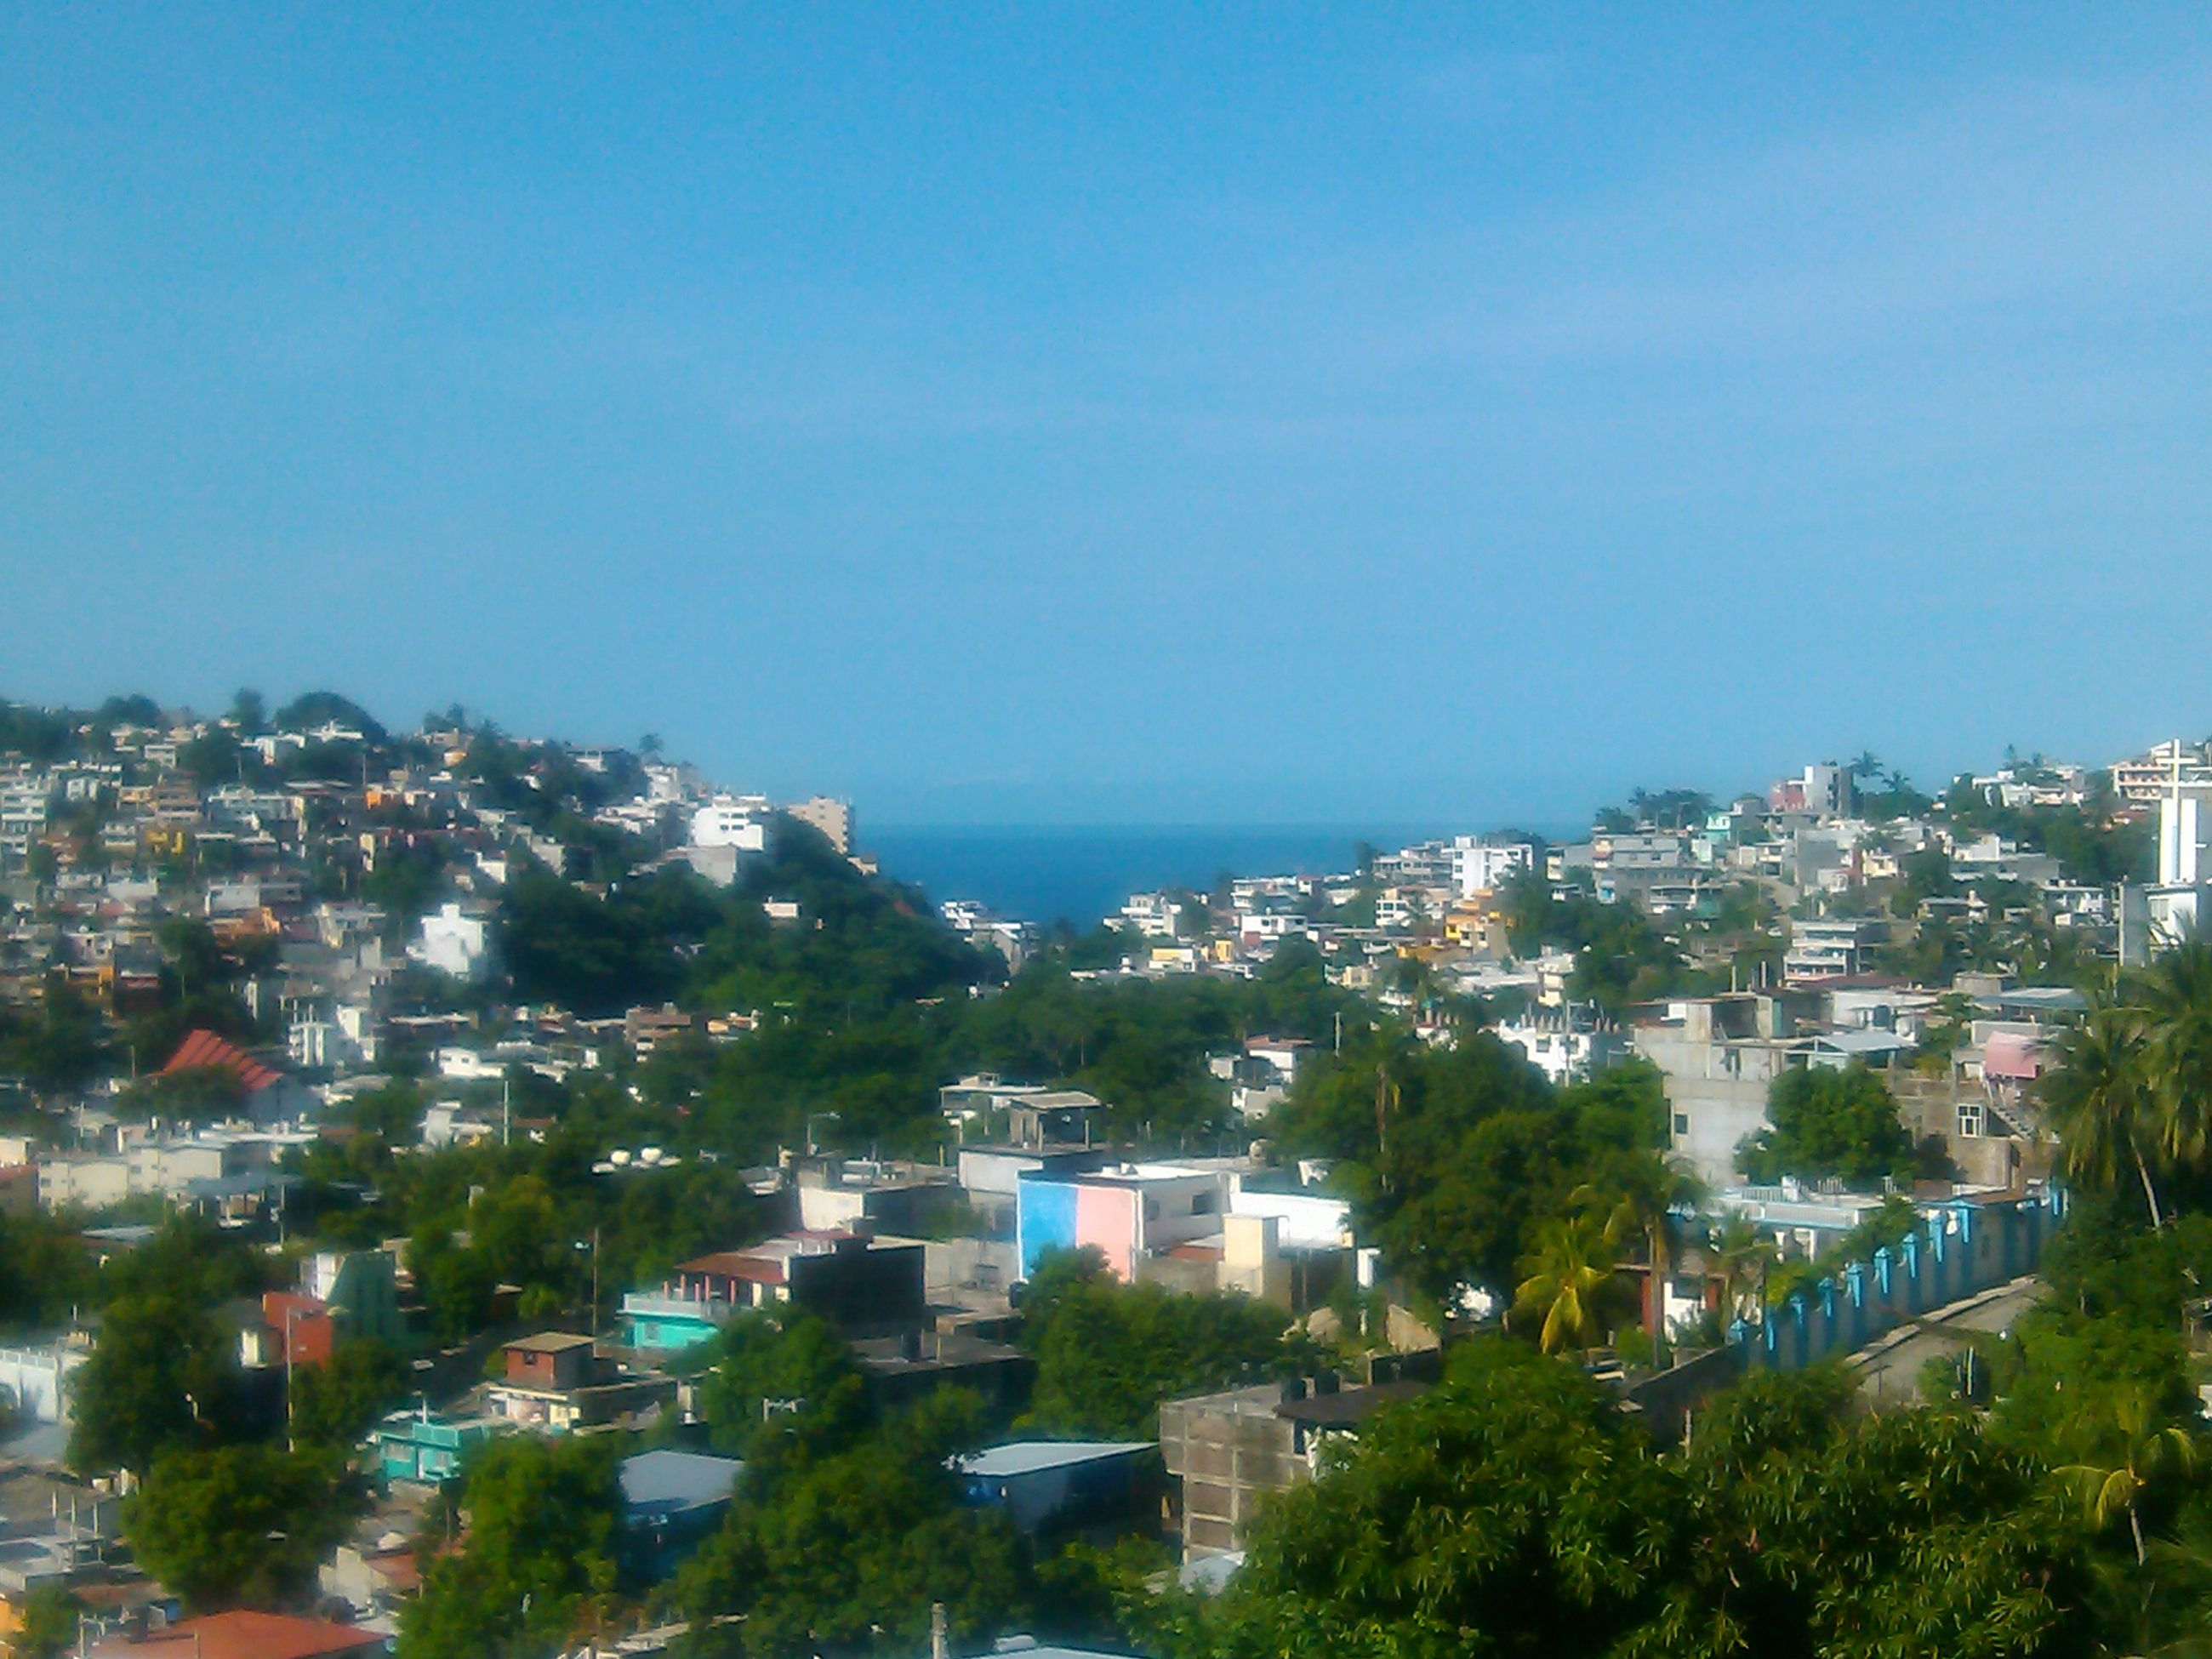 building exterior, architecture, built structure, cityscape, city, high angle view, crowded, residential district, blue, copy space, residential structure, clear sky, residential building, town, house, townscape, sea, tree, sky, horizon over water